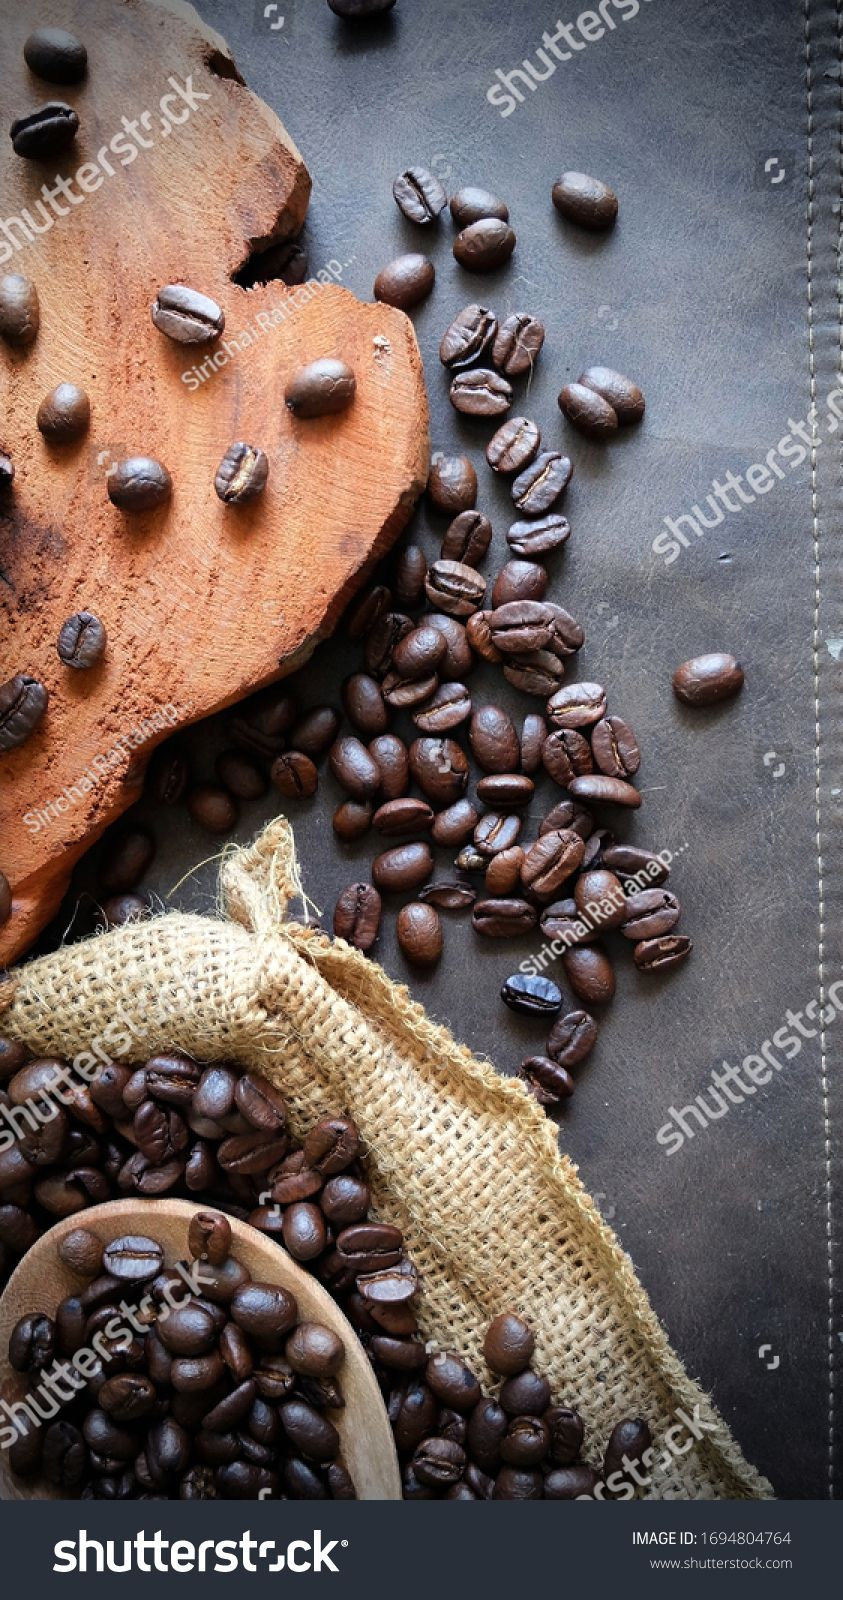 Coffee Bean On Dark Background Smoke On Cup Ingredients Coffee Concept Creative Thinking Coffee Top View Empt Ad Coffee Stock Coffee Beans Ingredients